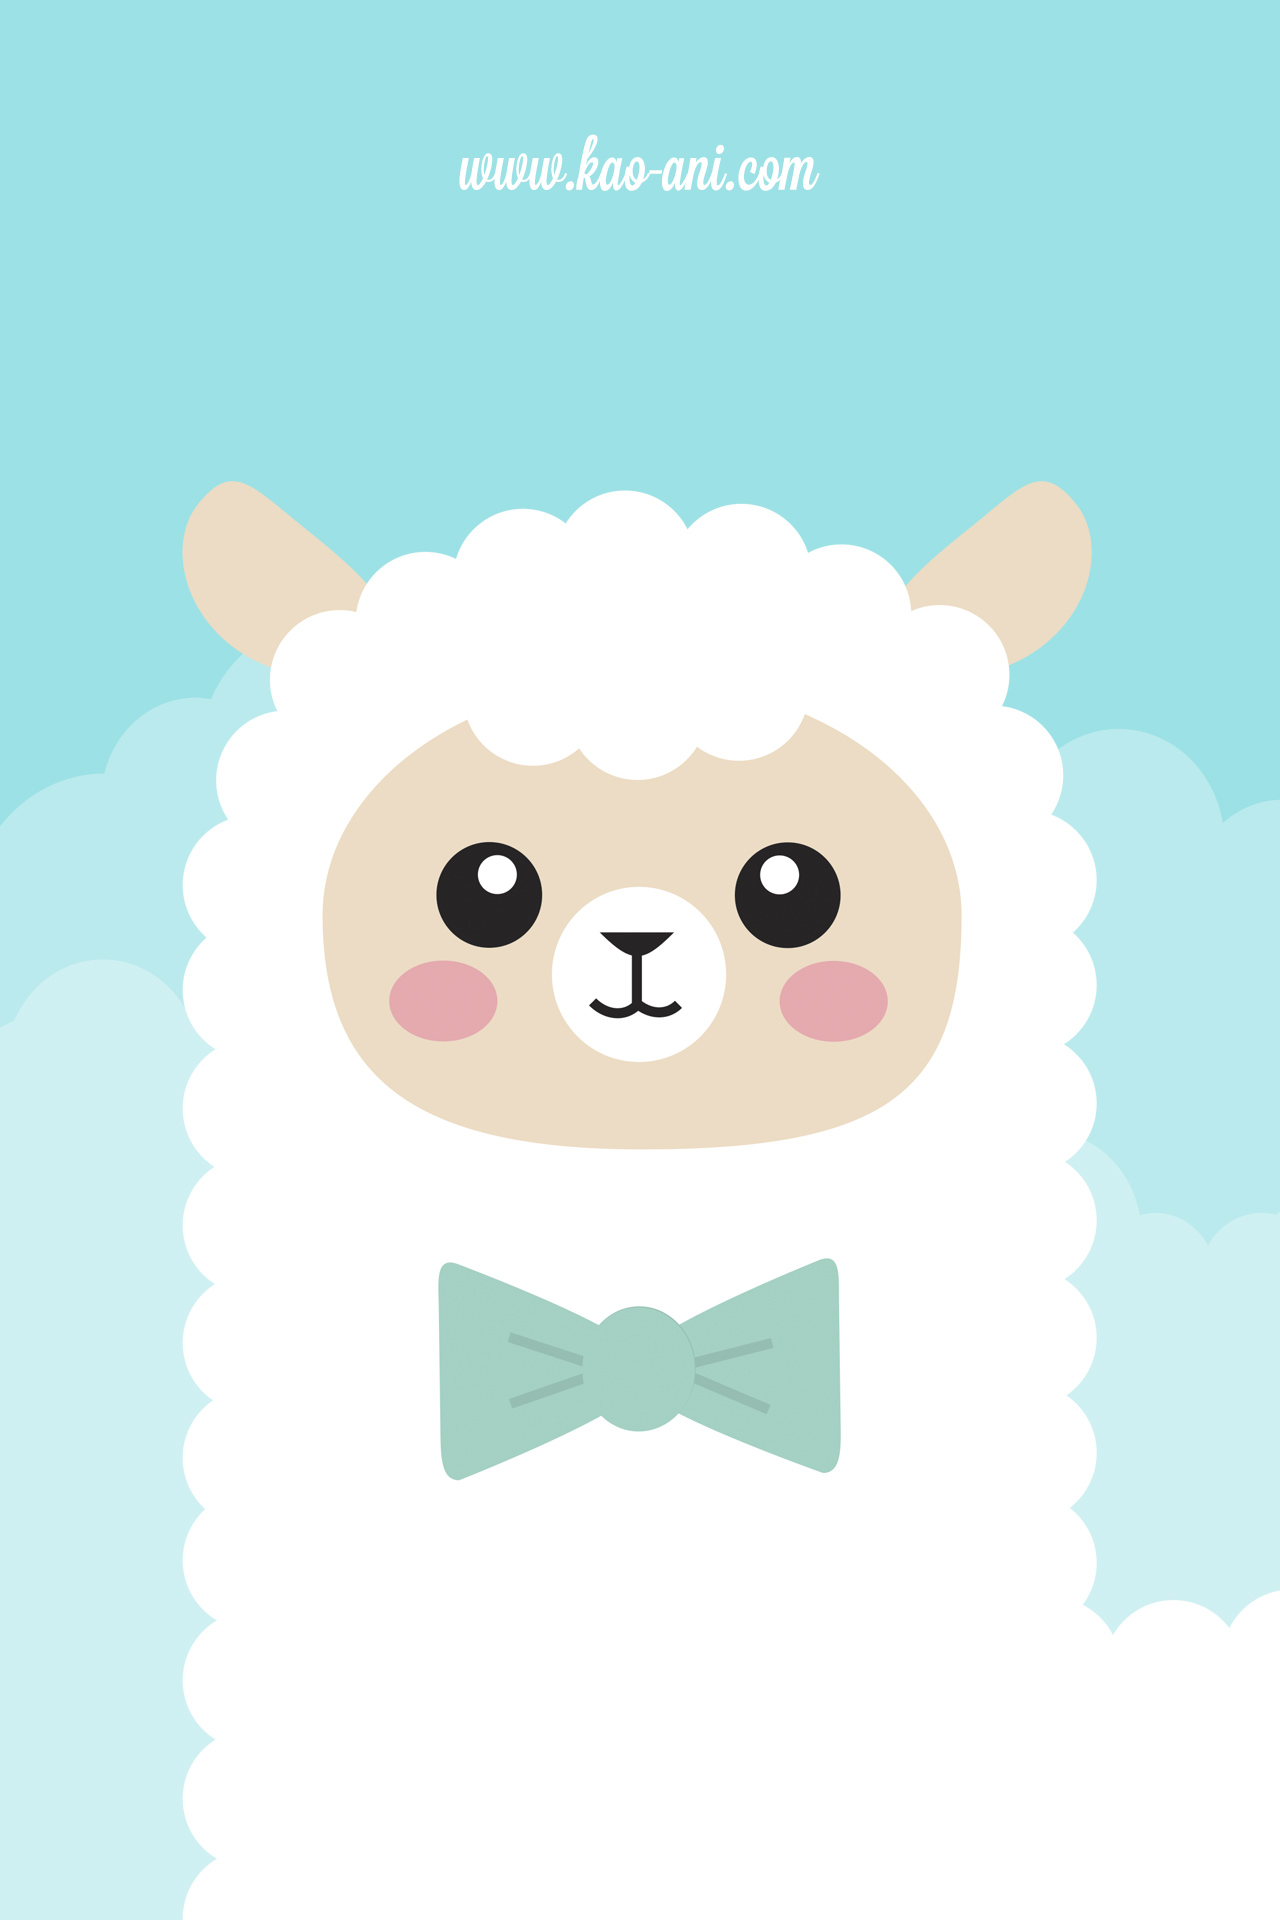 Cute iphone wallpapers tumblr hd - Alpaca Iphone Wallpaper Kao Ani Com